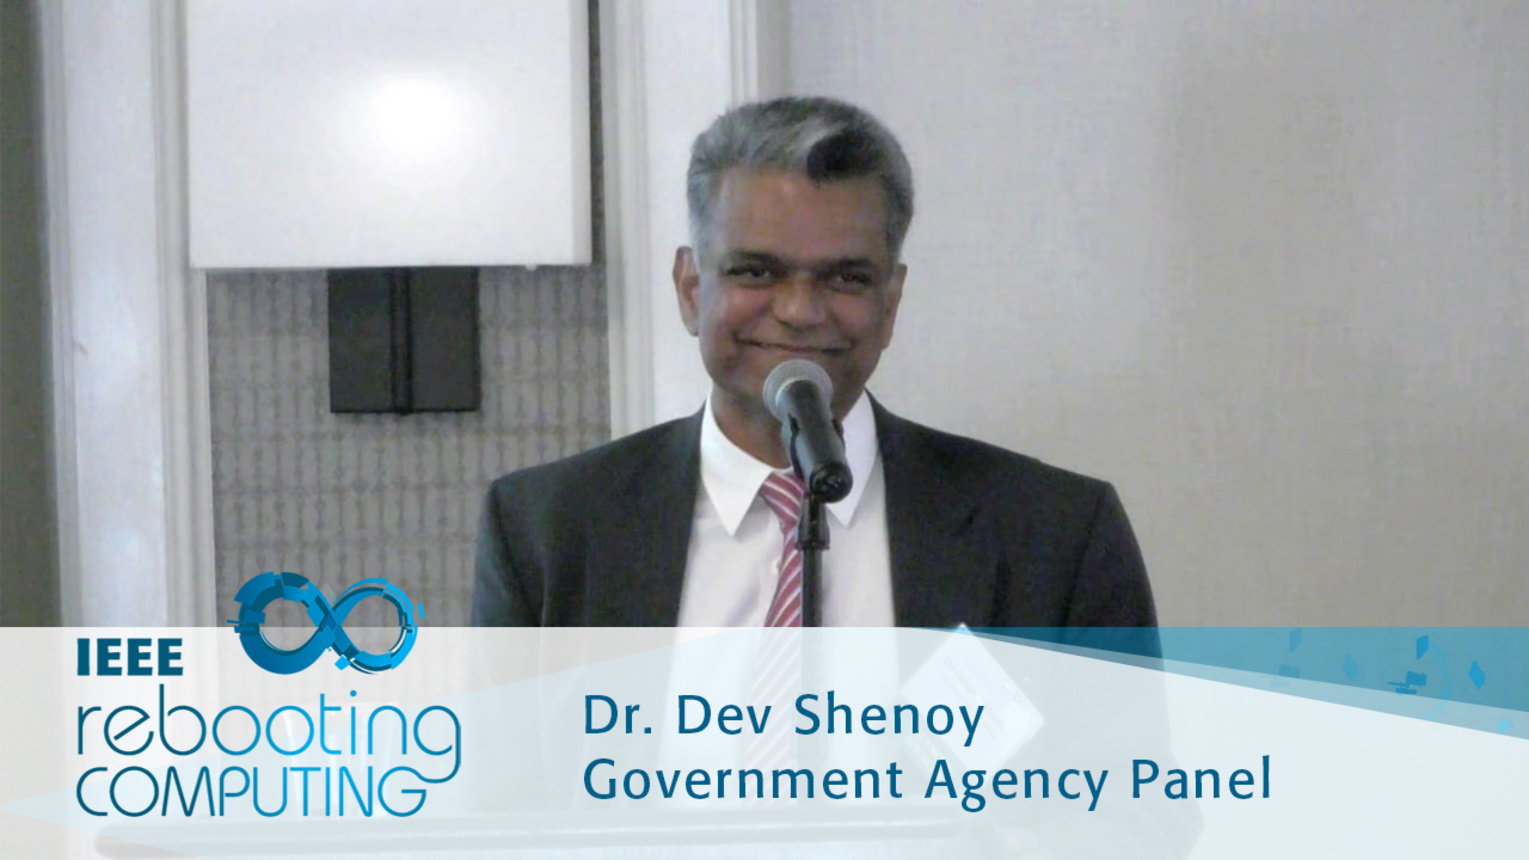 U.S. Department of Energy Advanced Manufacturing Overview - Dev Shenoy: 2016 International Conference on Rebooting Computing